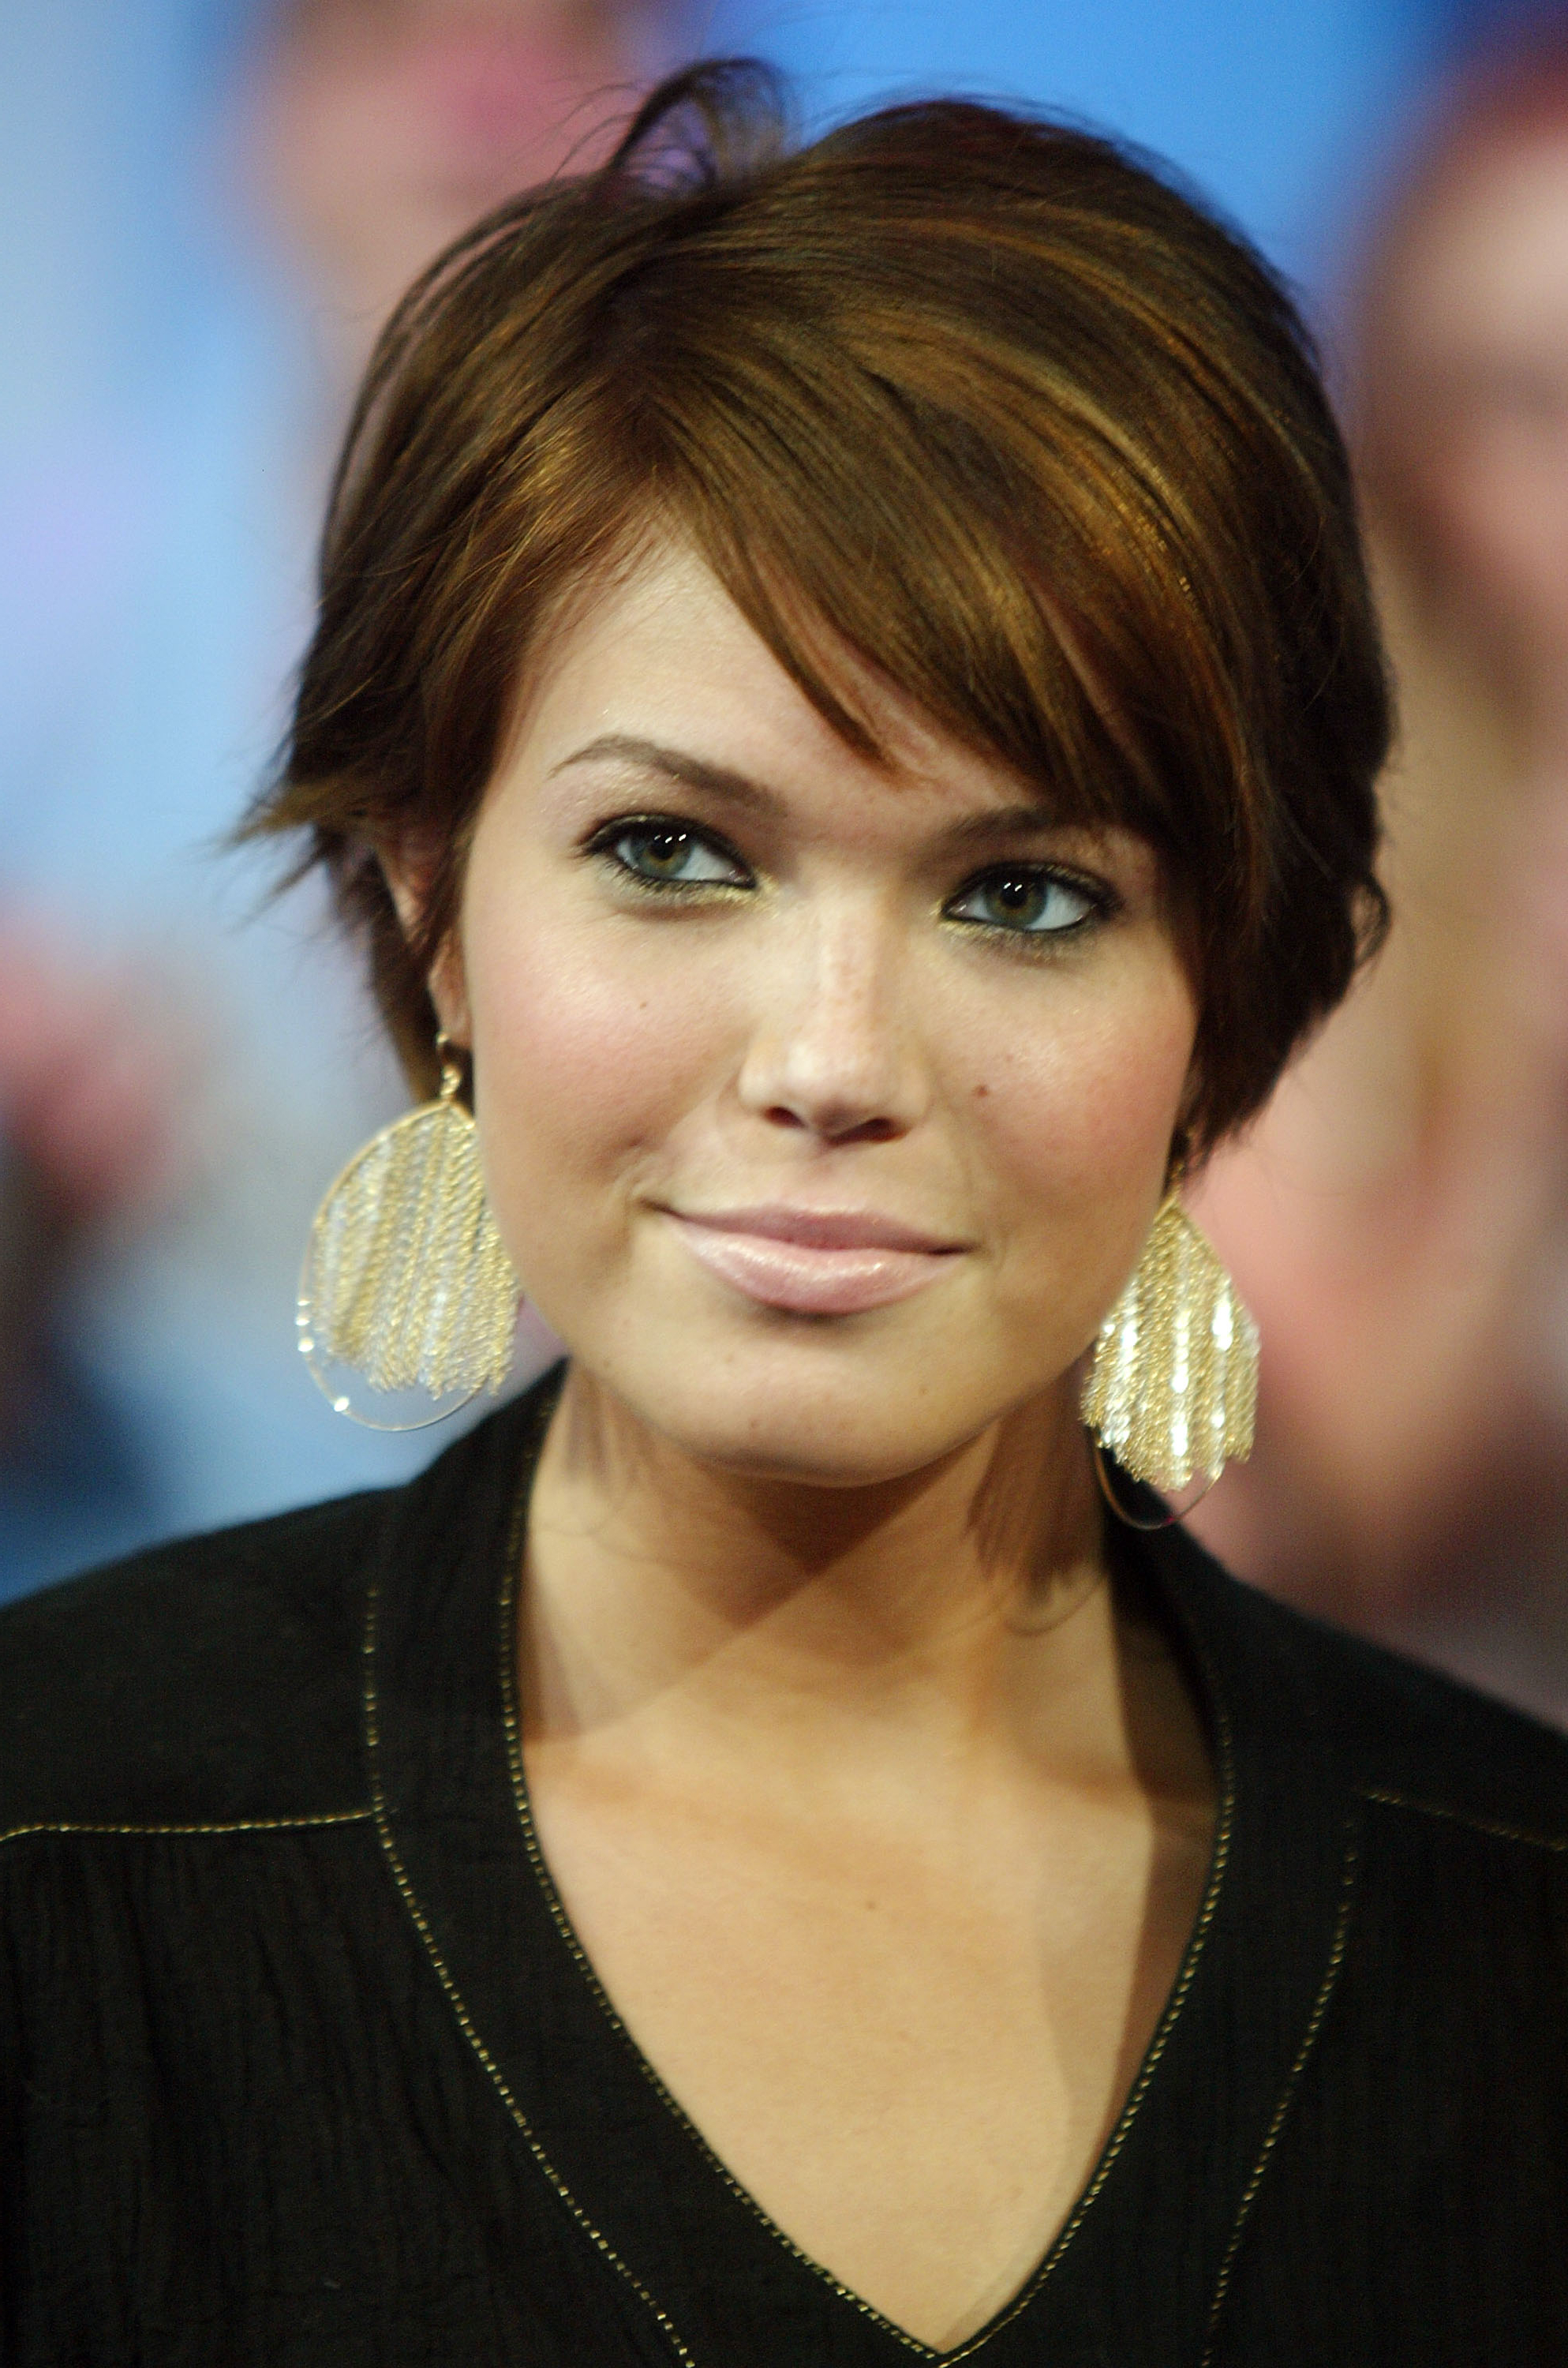 Short Hairstyles For Round Faces And Curly Hair – Hairstyle For Inside Short Haircuts For Round Faces And Curly Hair (View 19 of 25)